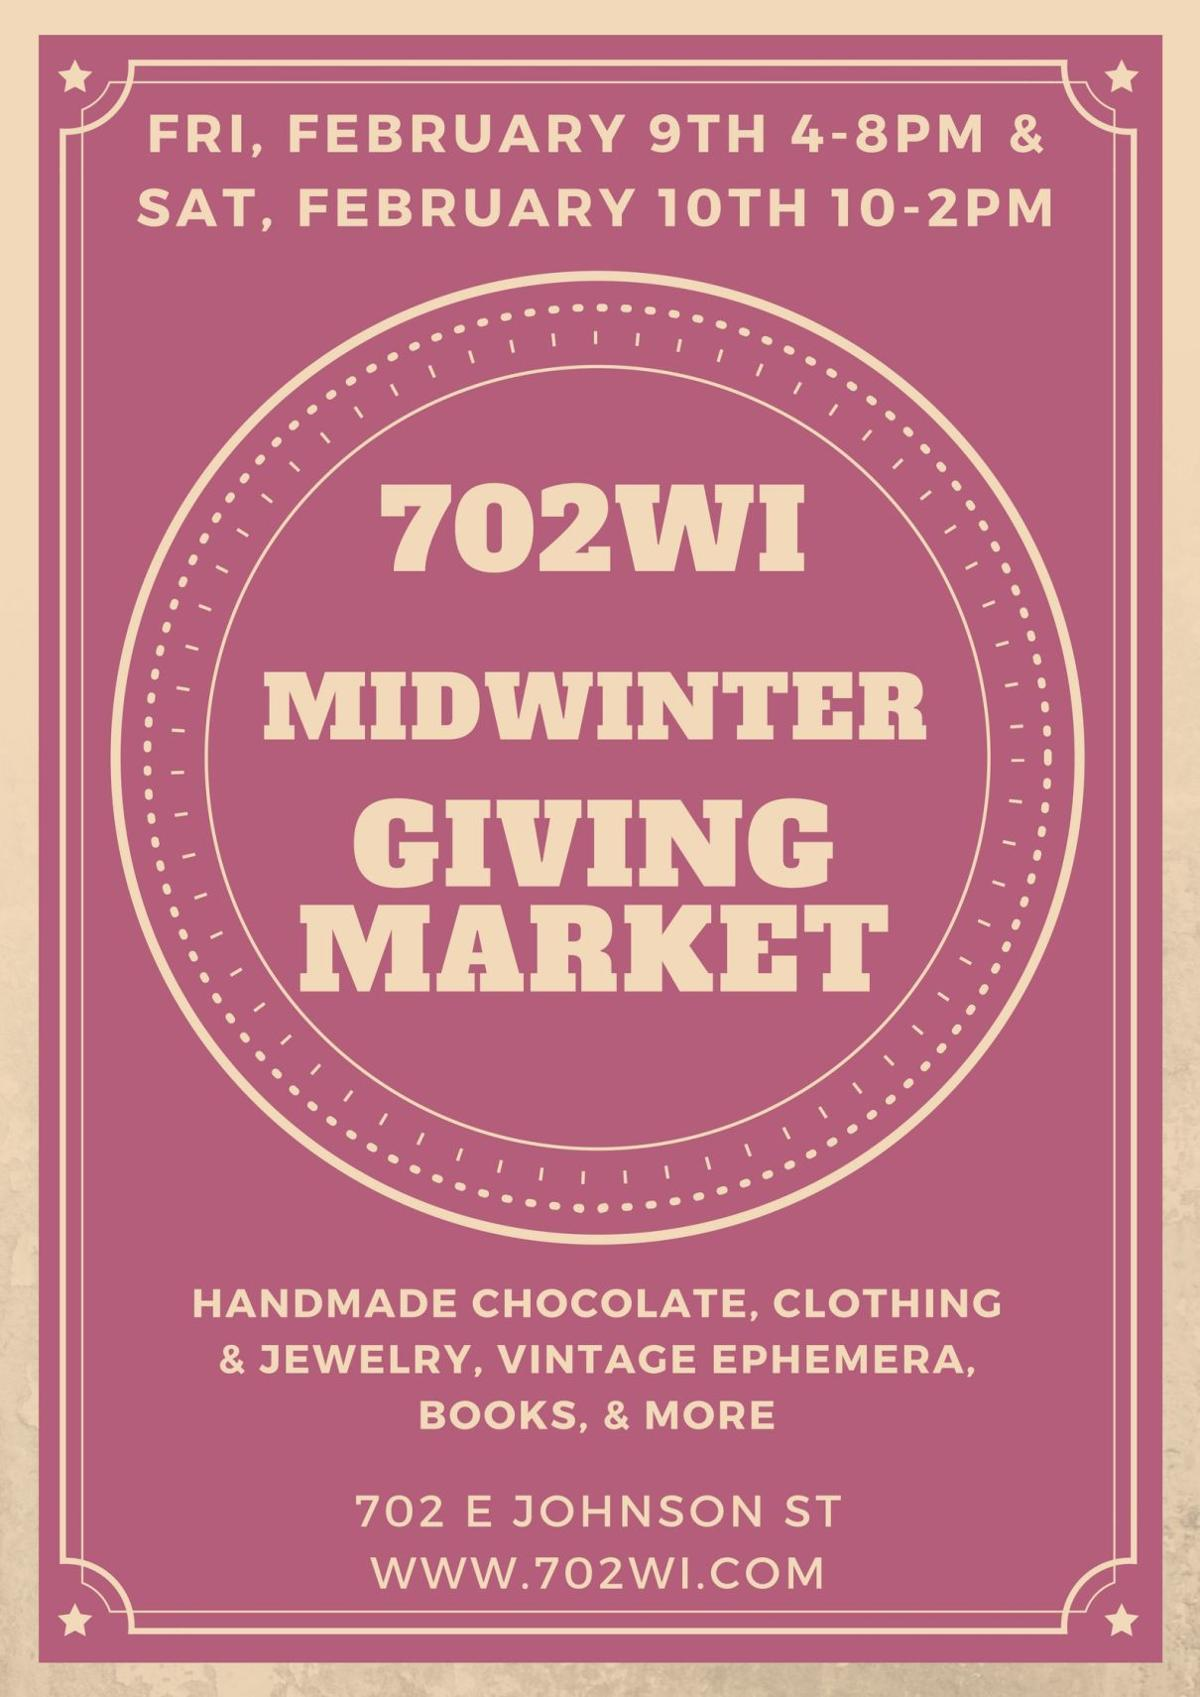 702WI Midwinter Giving Market 702WI